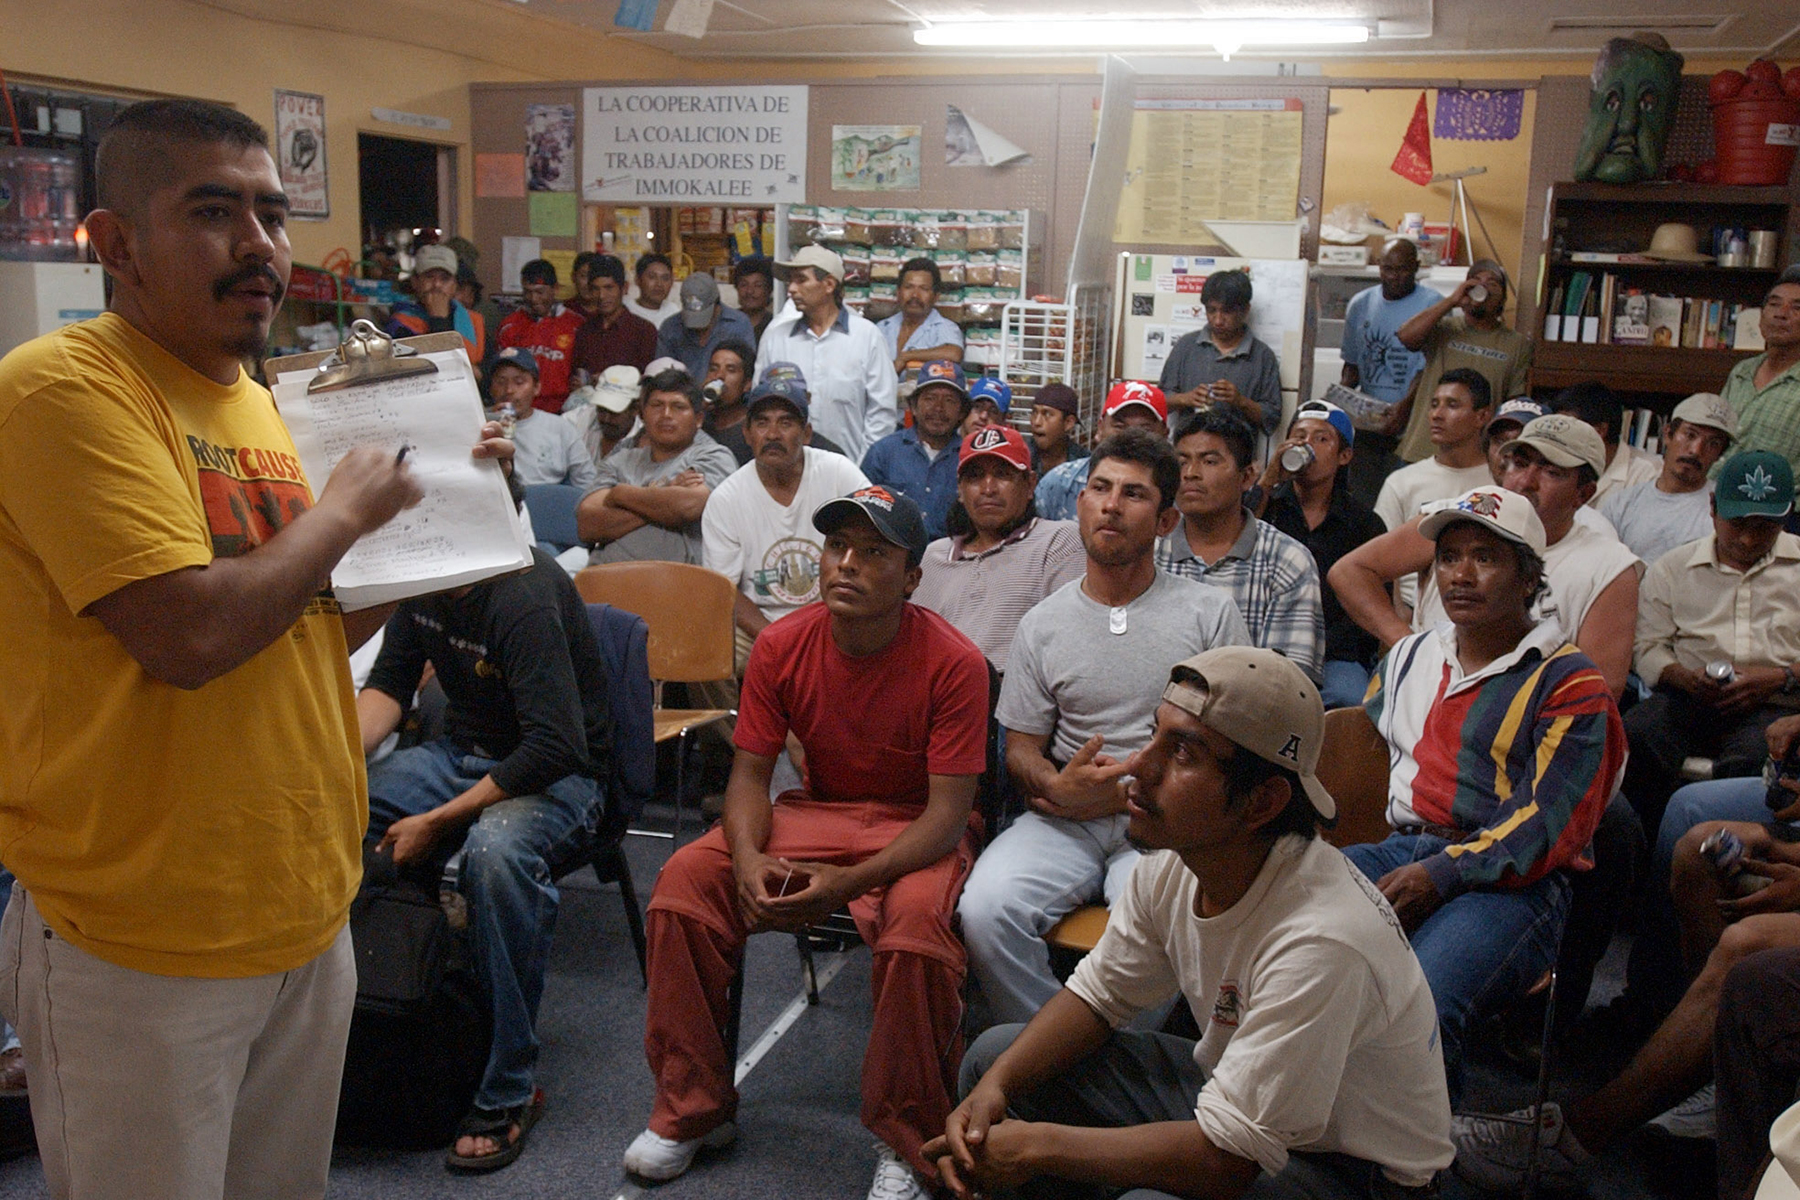 Lucas Benitez, left, conducts the weekly farmworkers meeting in Immokalee, Fla. Wednesday, Feb. 11, 2004 after the workers had spend the day picking crops in the nearby fields. (AP Photo/J.Pat Carter)